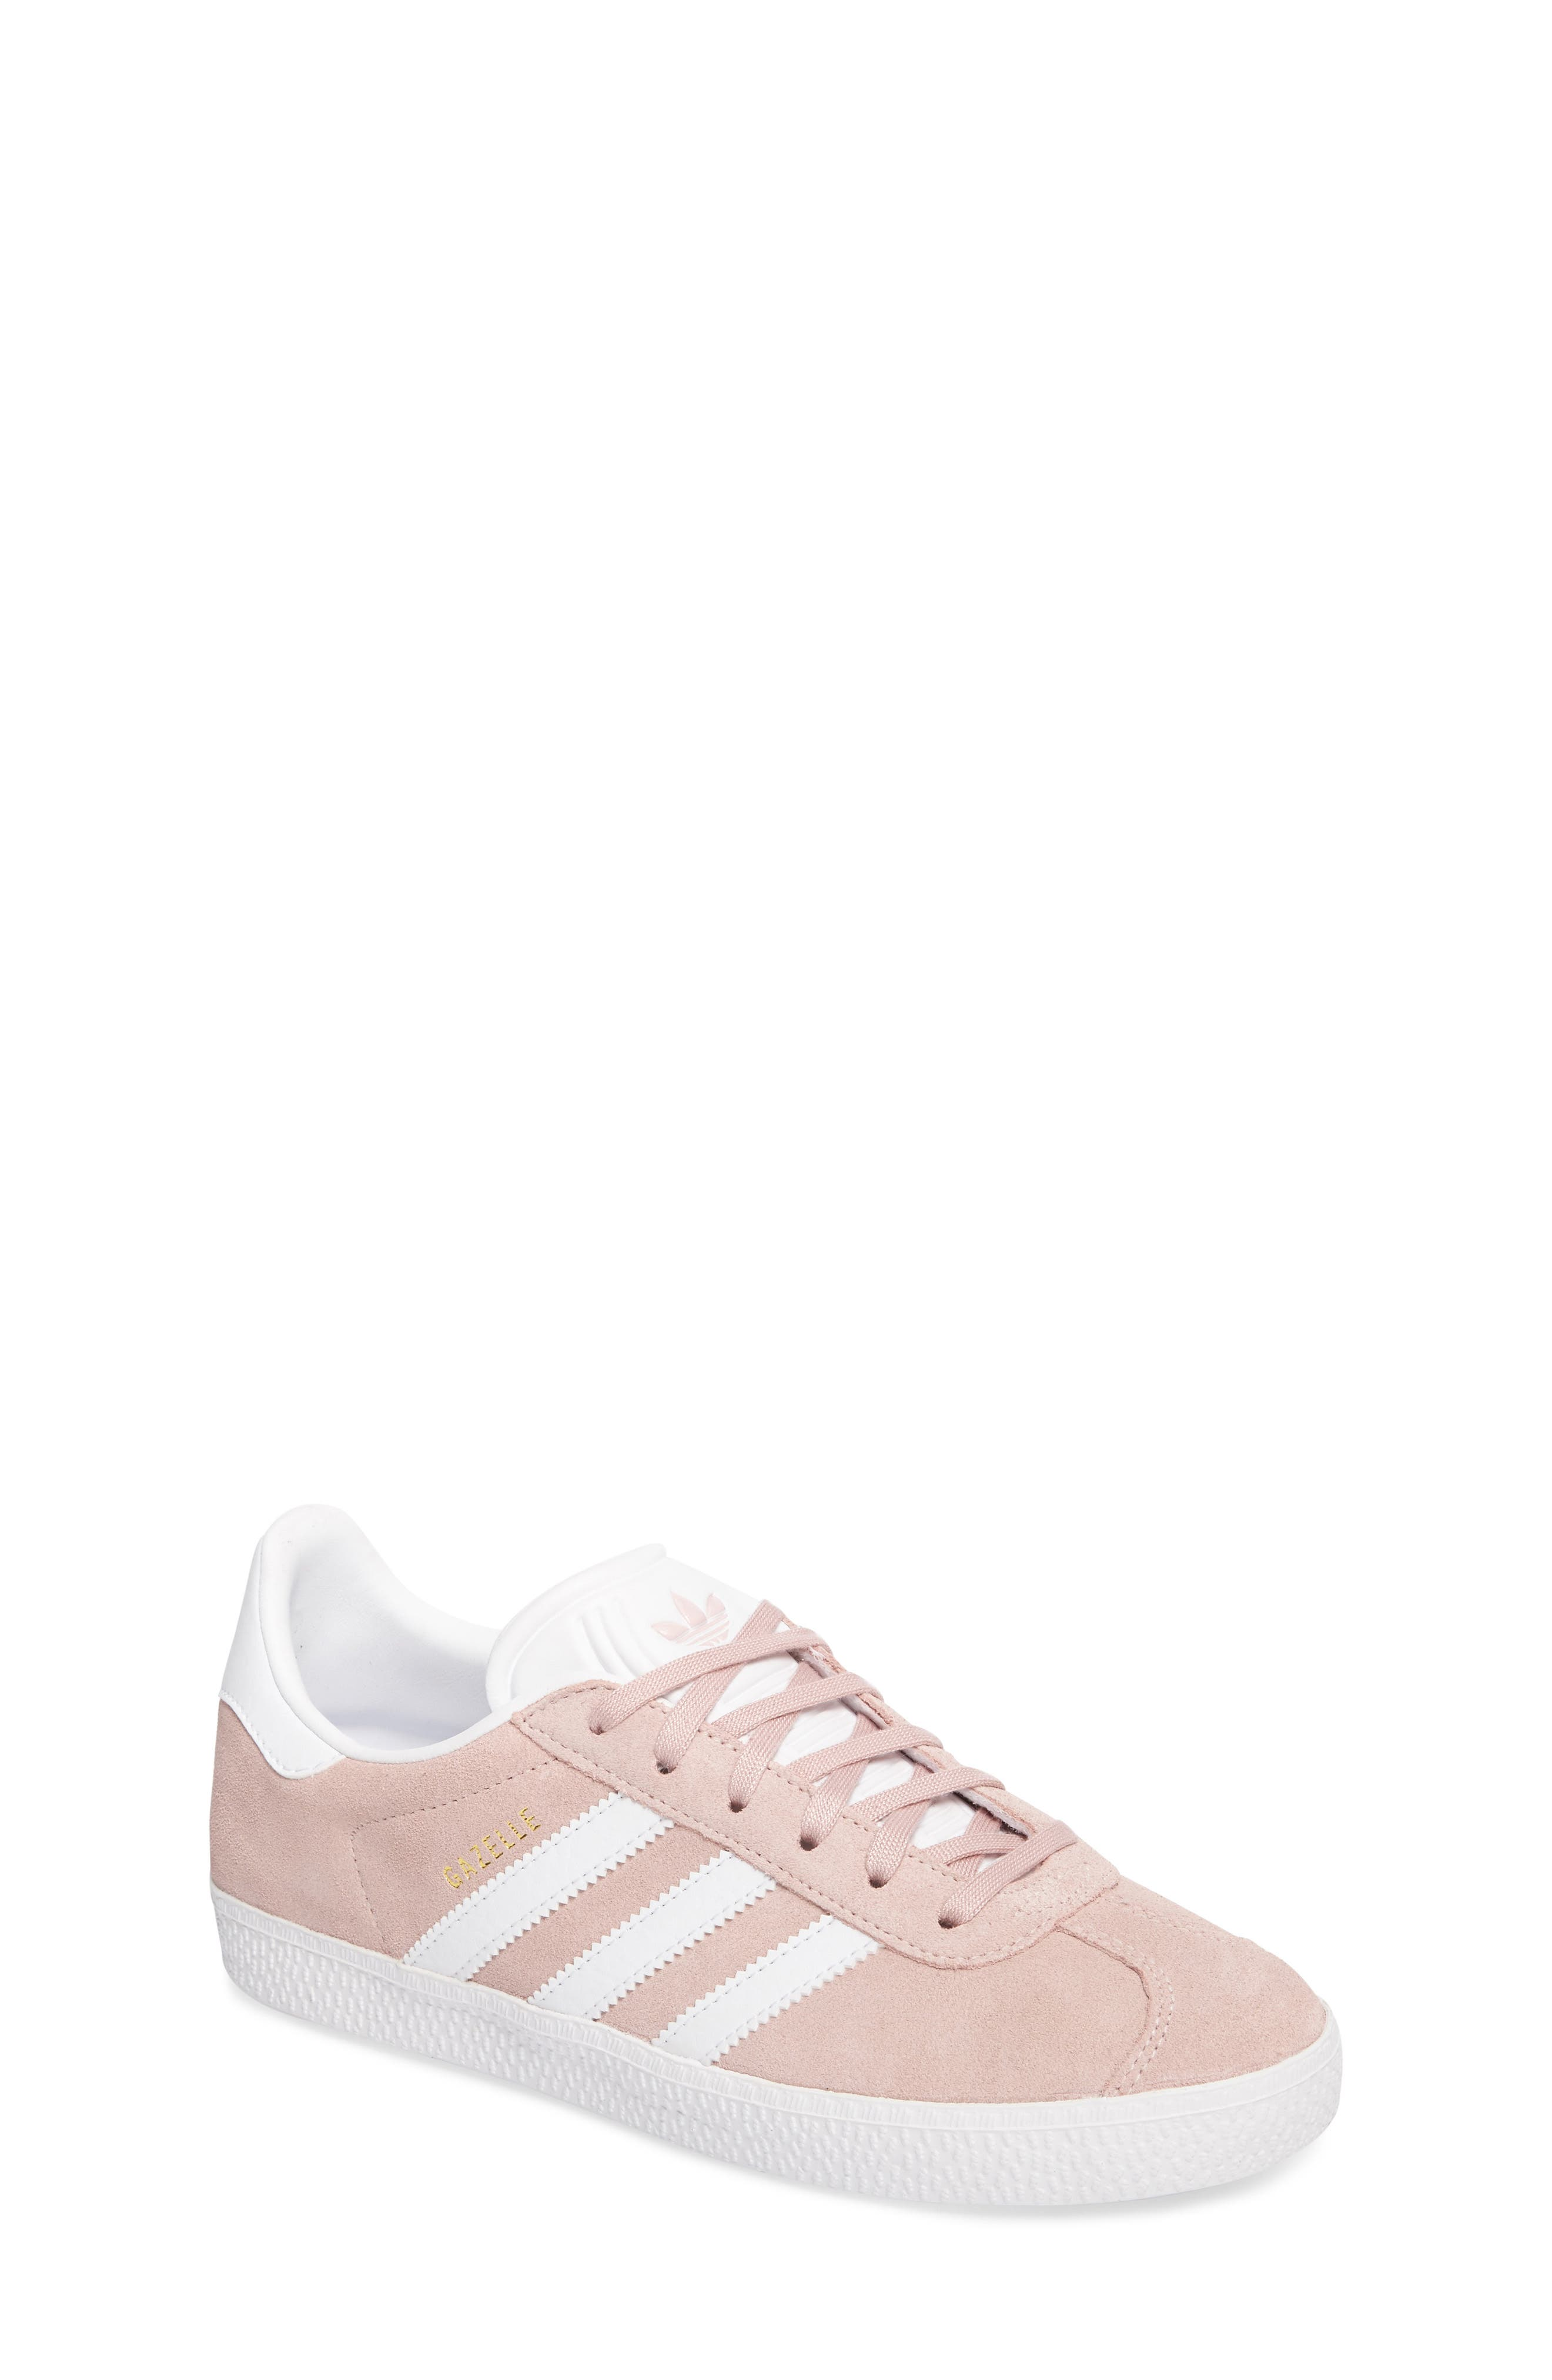 Gazelle Sneaker,                         Main,                         color, Icy Pink/ White/ Gold